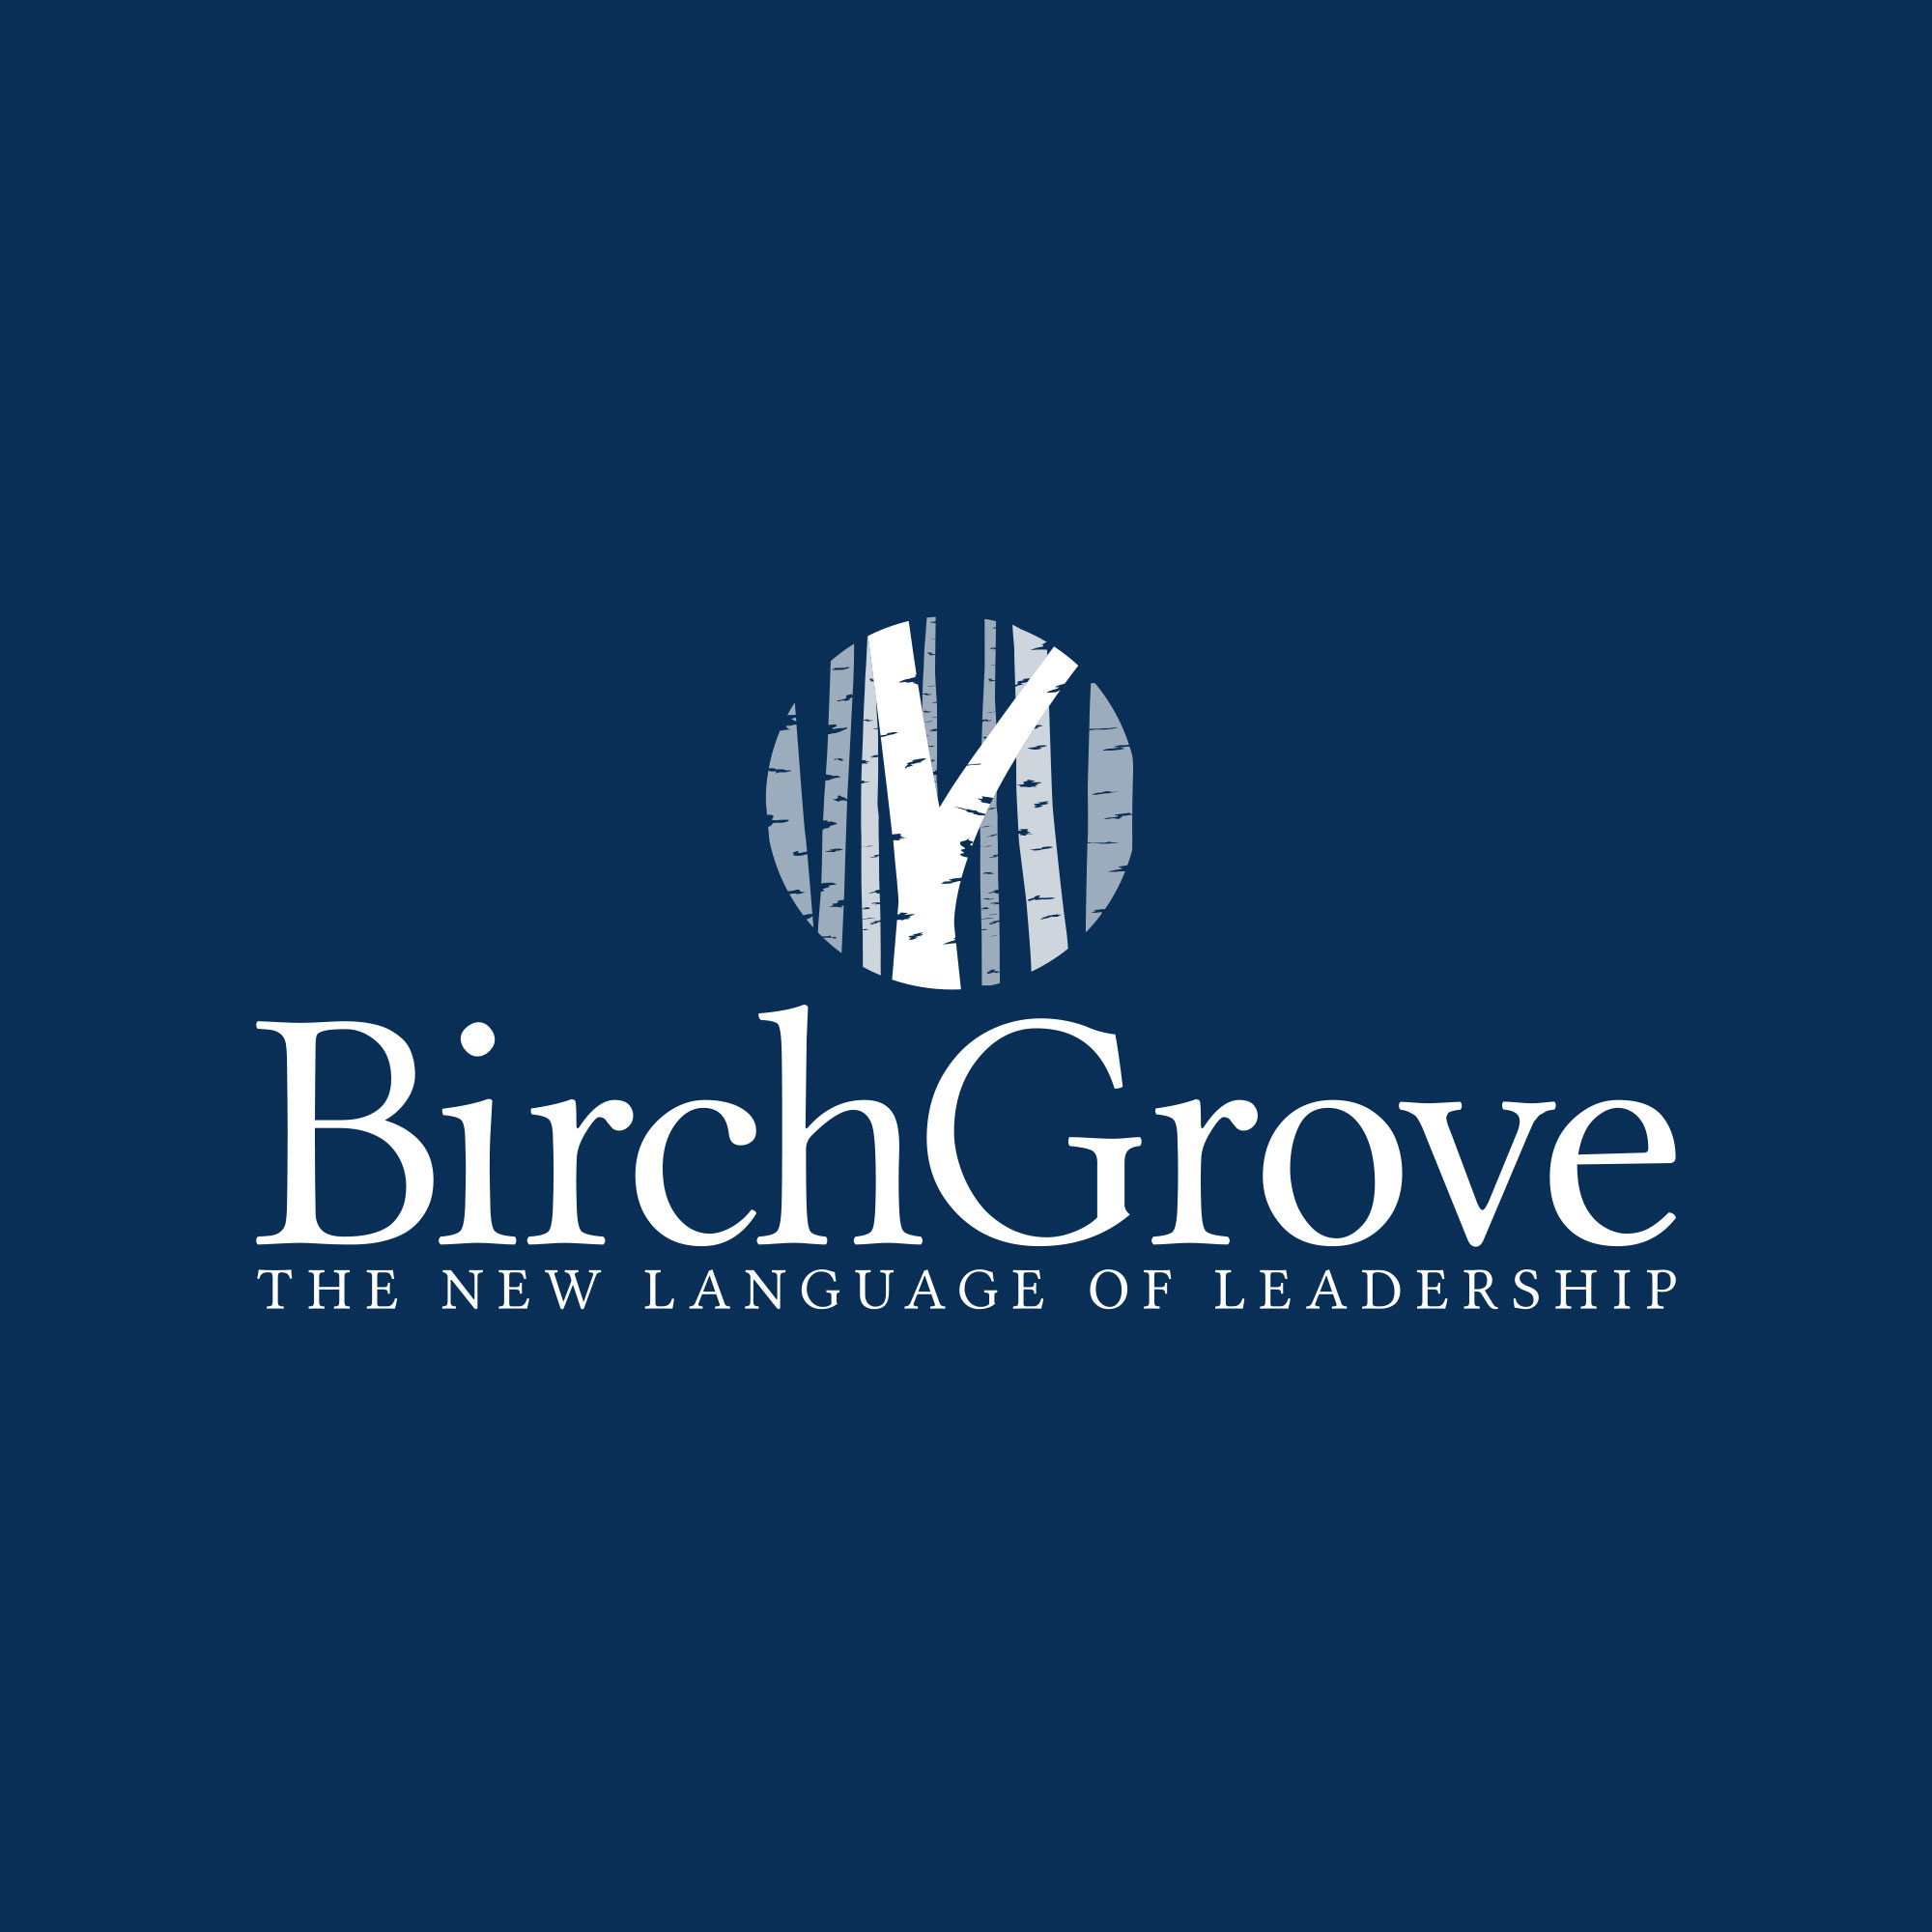 BirchGrove's Logo and Branding